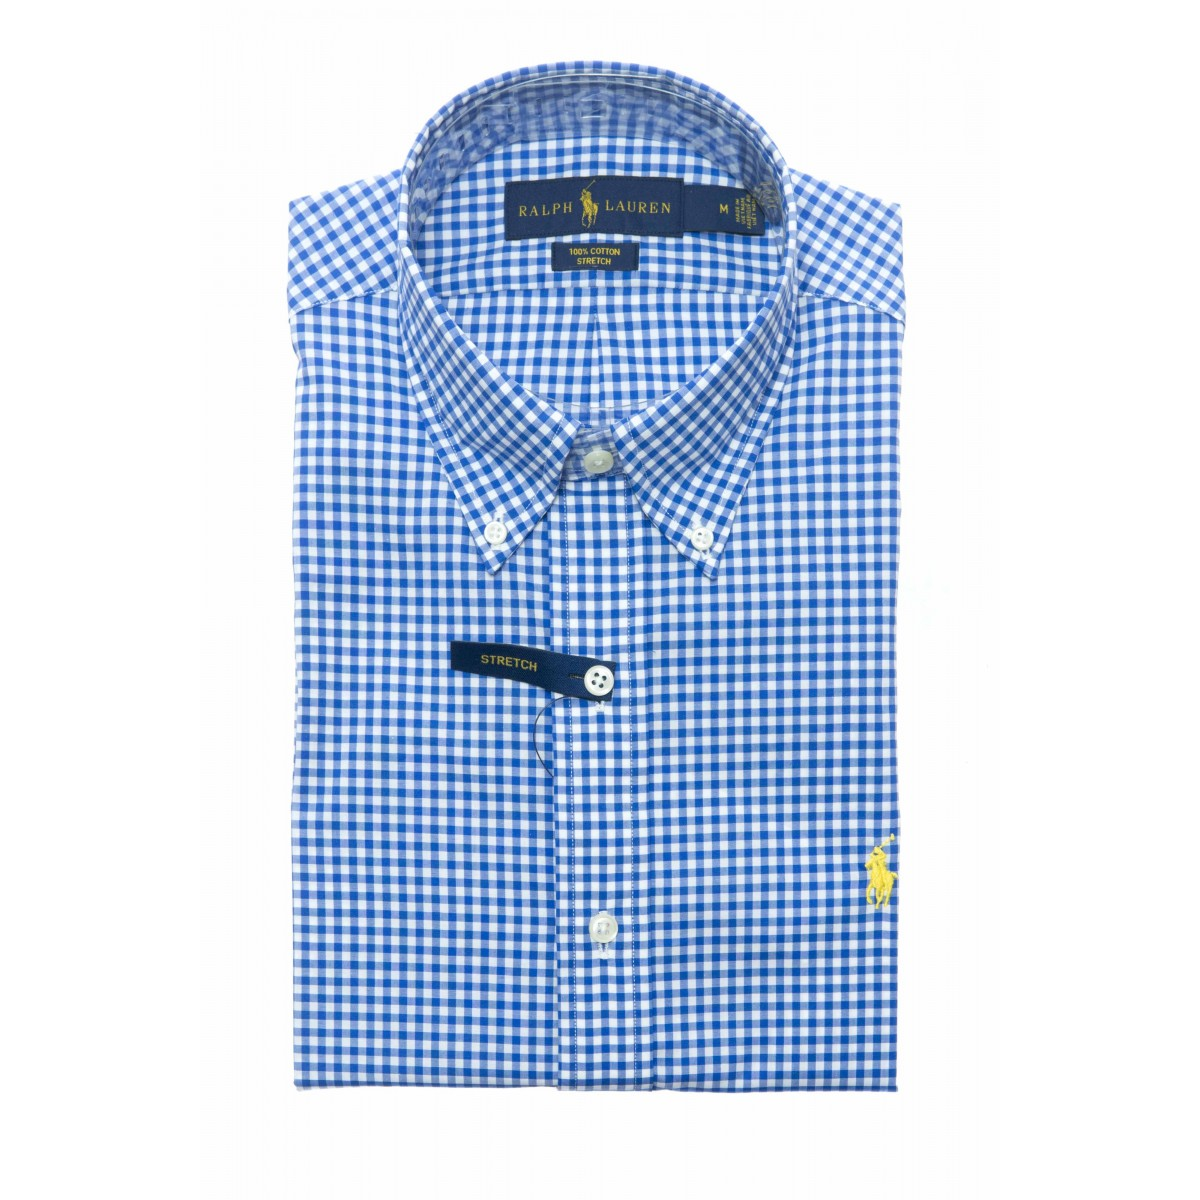 Camicia uomo - 744243 camicia quadretto oxford